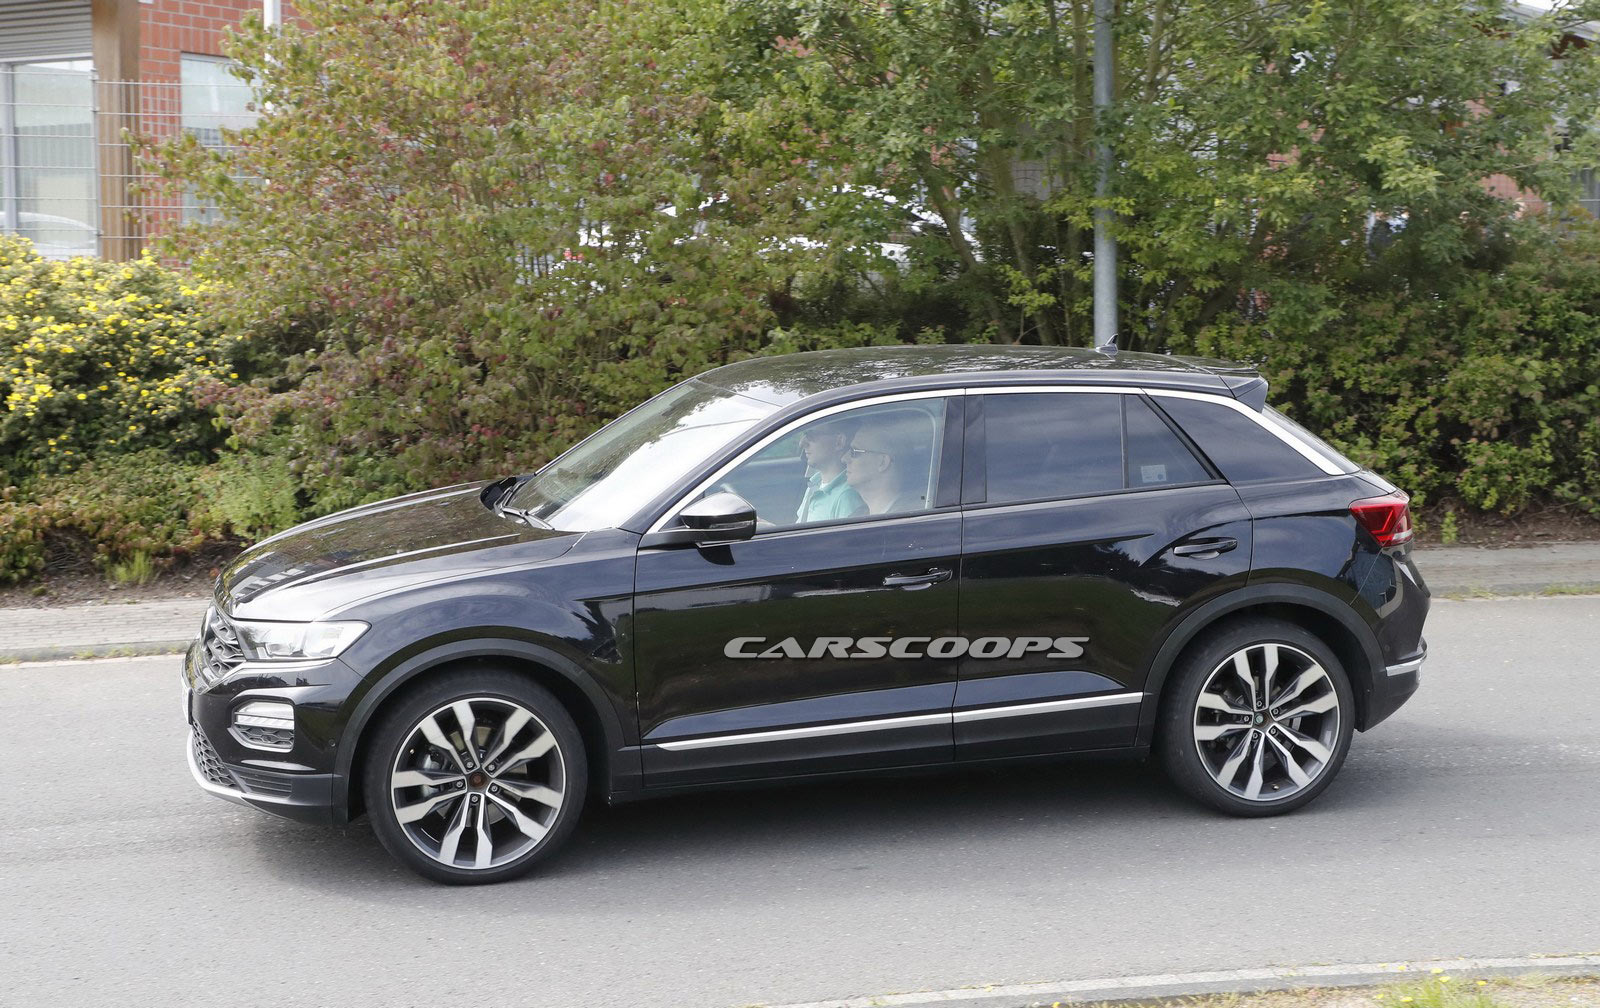 vw t roc hits the streets of germany following its big debut carscoops. Black Bedroom Furniture Sets. Home Design Ideas